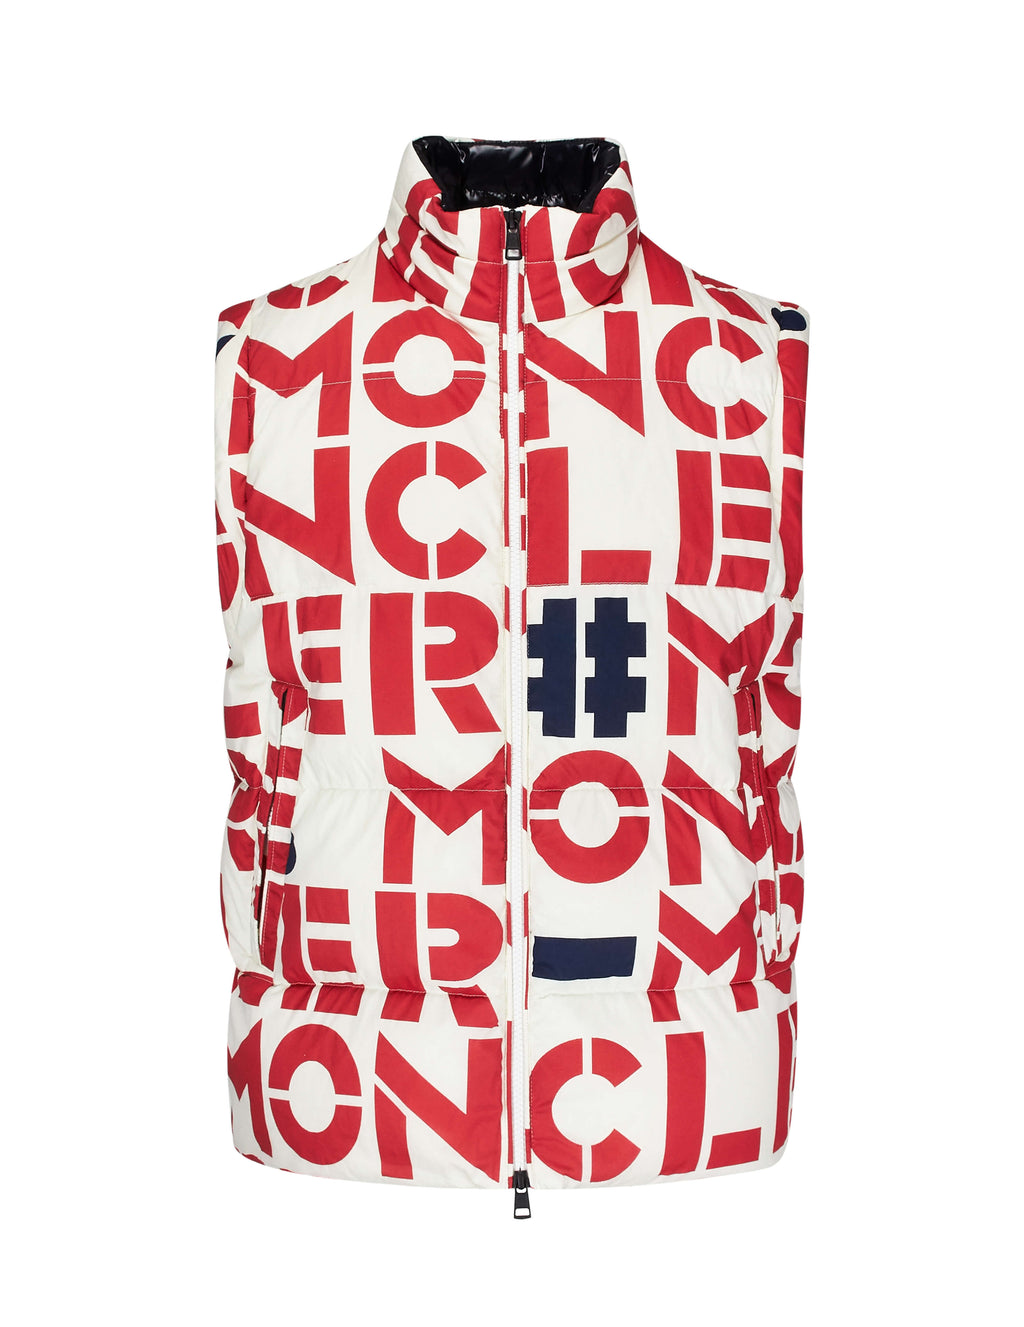 2 Moncler 1952 Men's Giulio Fashion White and Red Jehan Jacket 413850554A7A034